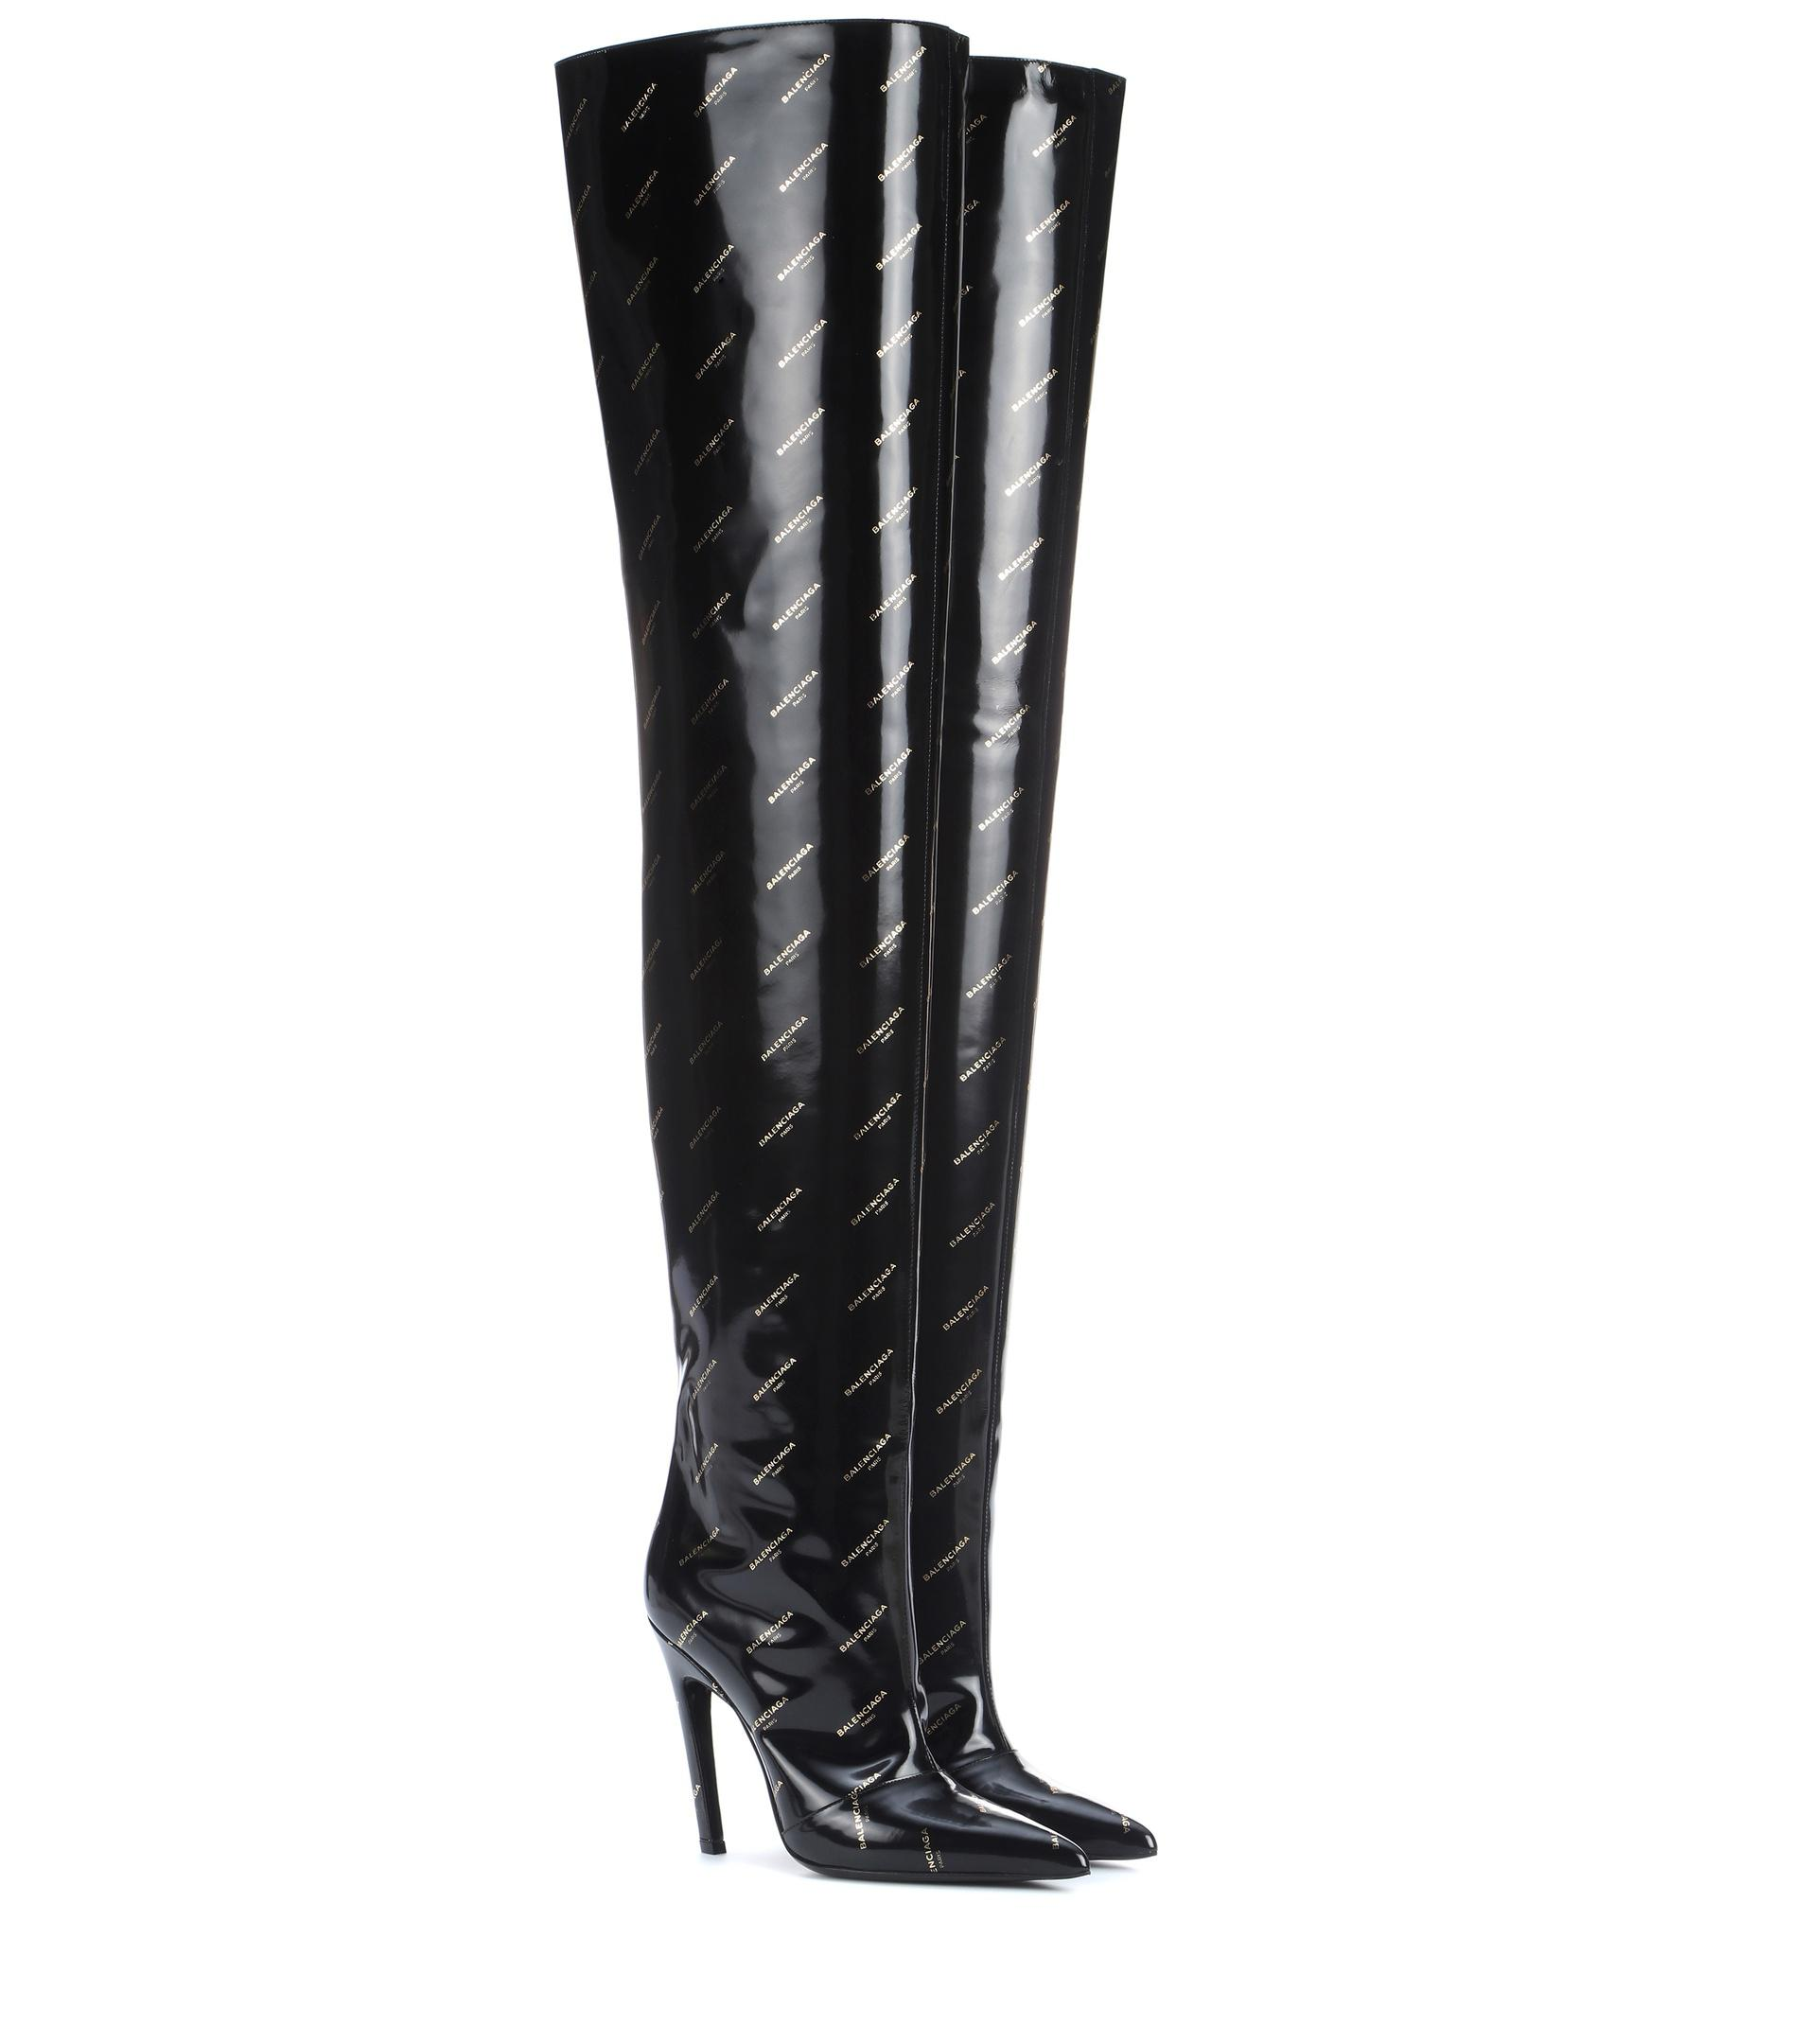 BalenciagaKnife over-the-knee leather boots 9vurq